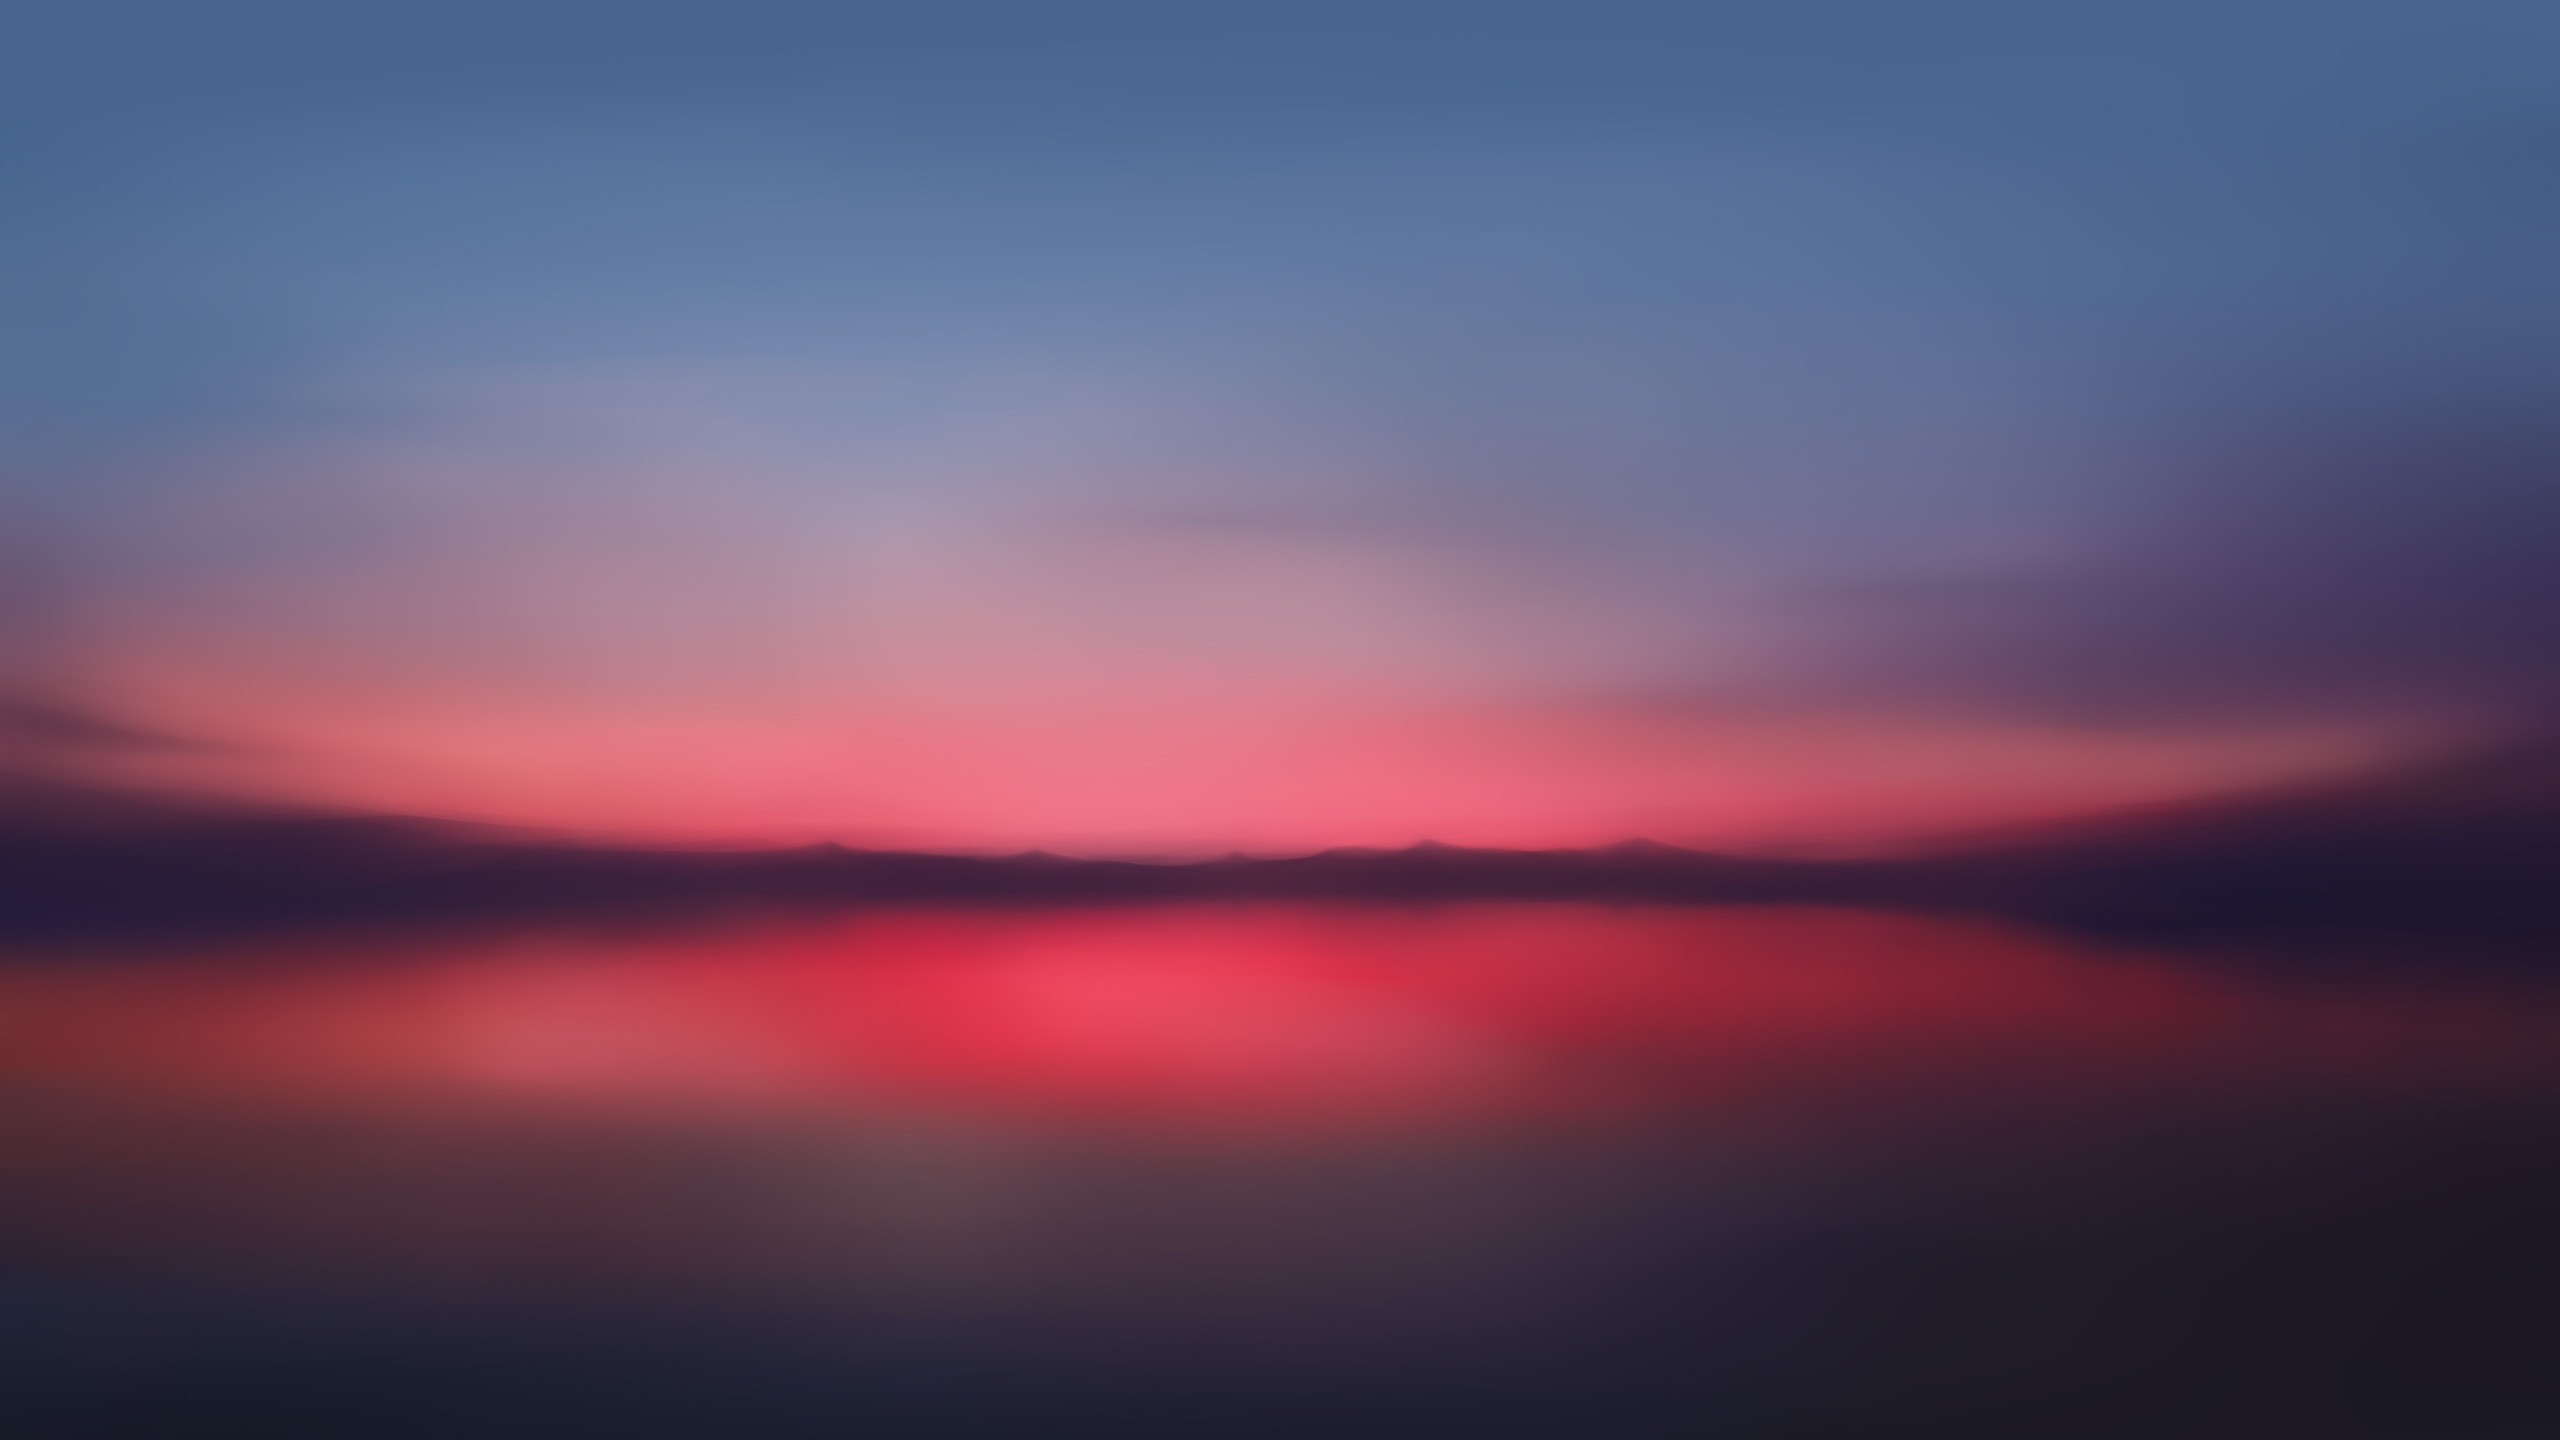 2560x1440 Red Sunset Blur Minimalist 5k 1440P Resolution ...